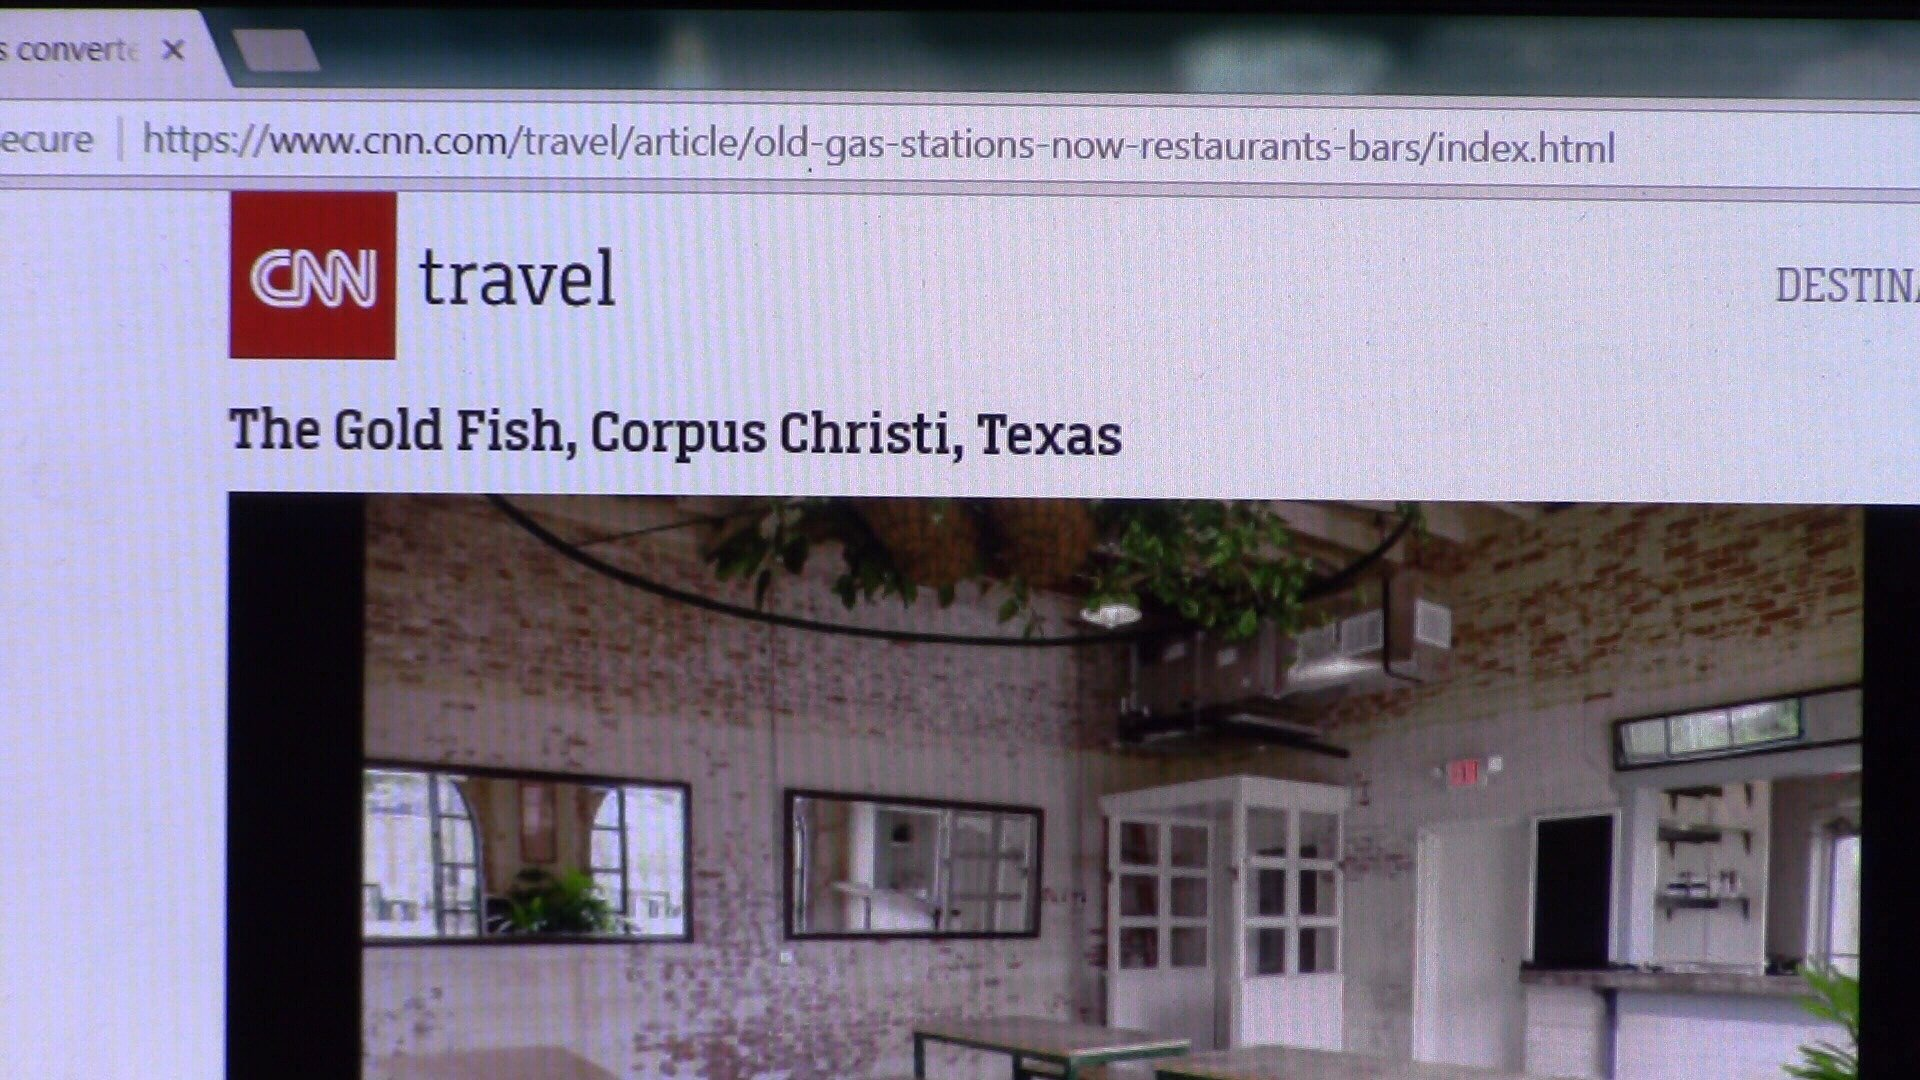 The Gold Fish reviewed in the travel section of CNN.com